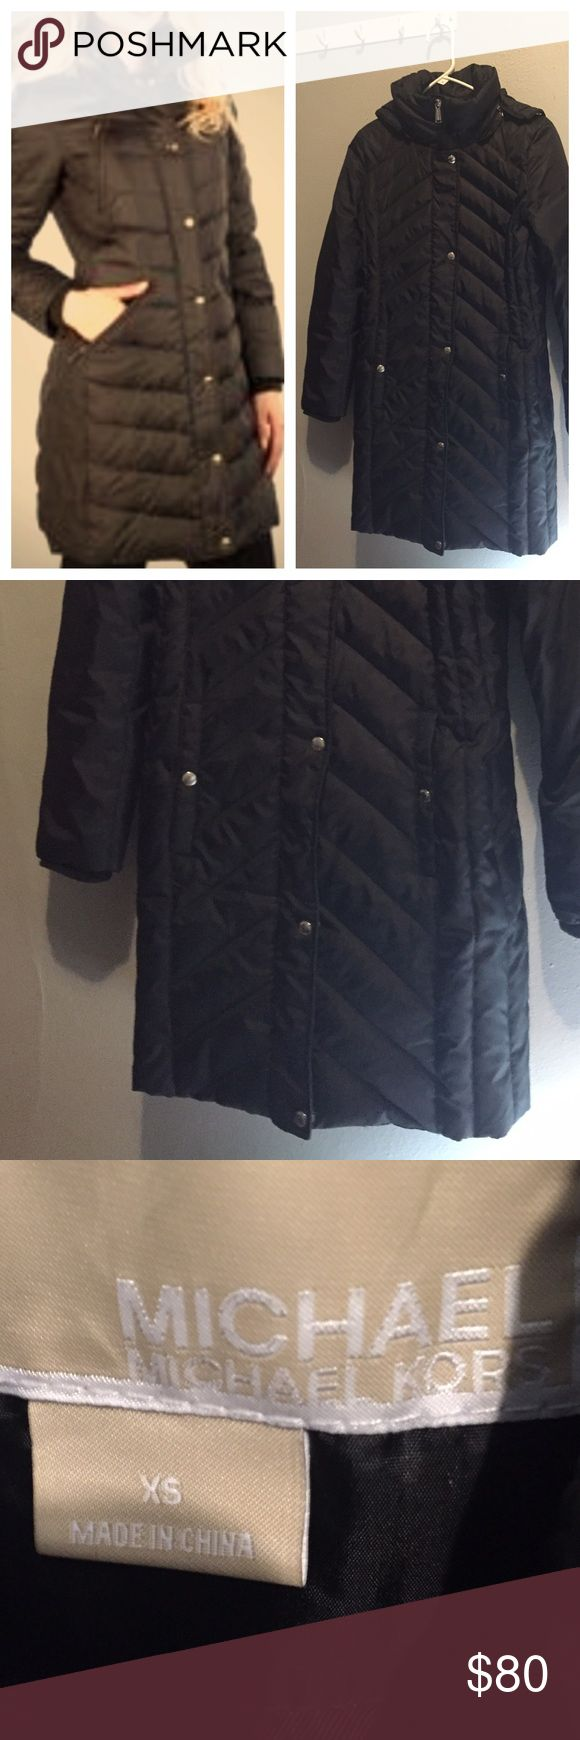 Michael Kors Puffer Coat Black MK Puffer coat size XS, removable hood, zips and buttons close. See pic 4 then pic 2, the very bottom button popped off, it doesn't show when it's zipped and buttoned and barely noticeable if you wear it open. Easy fix if you can sew or know someone who can fix it for you. Very, very warm. Will fit a small Michael Kors Jackets & Coats Puffers